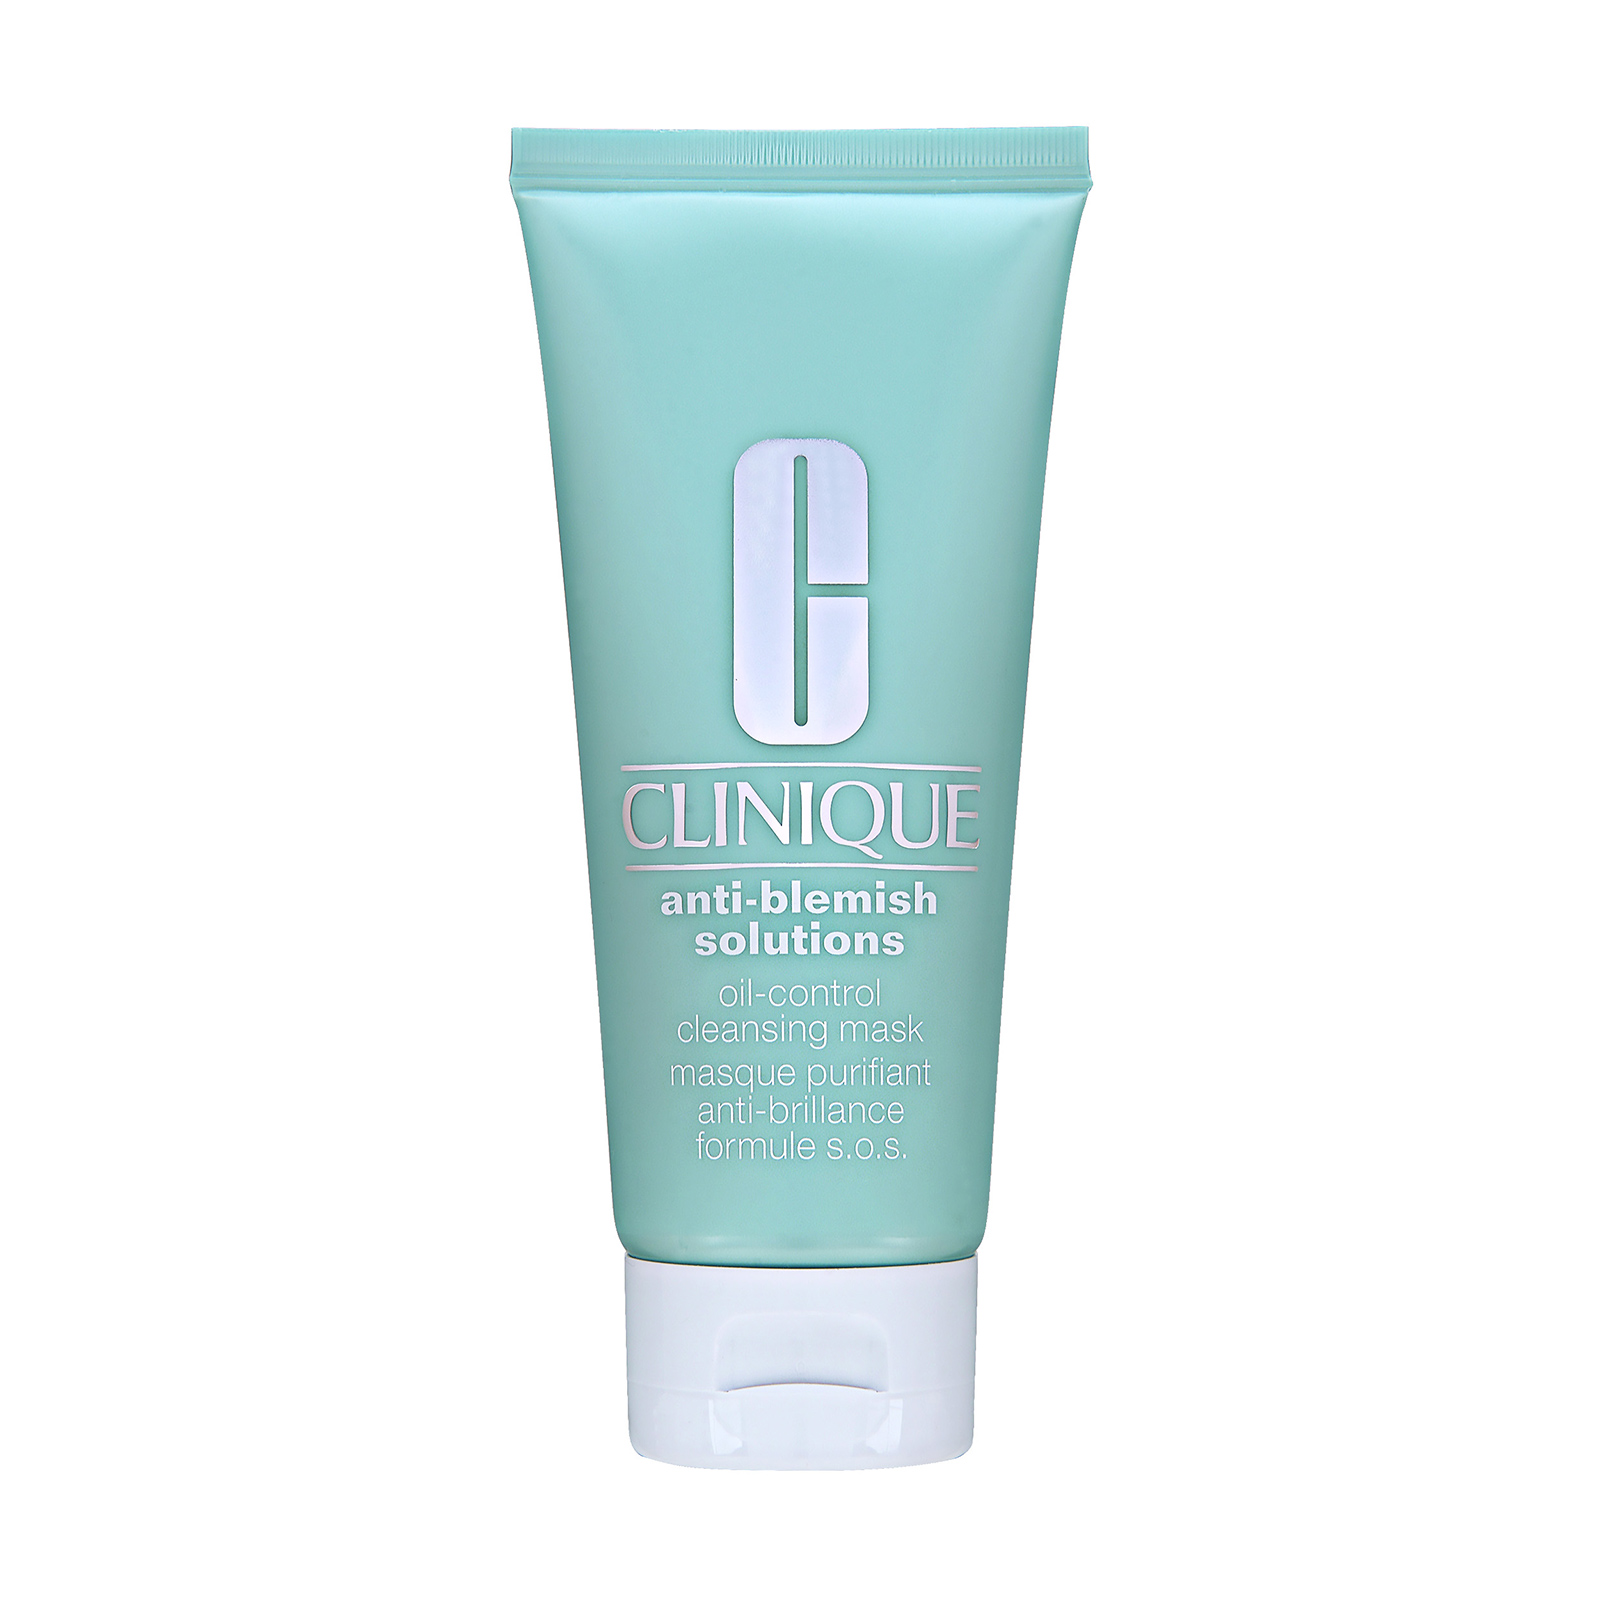 Clinique Anti-Blemish Solutions  Oil-Control Cleansing Mask 3.4oz, 100ml